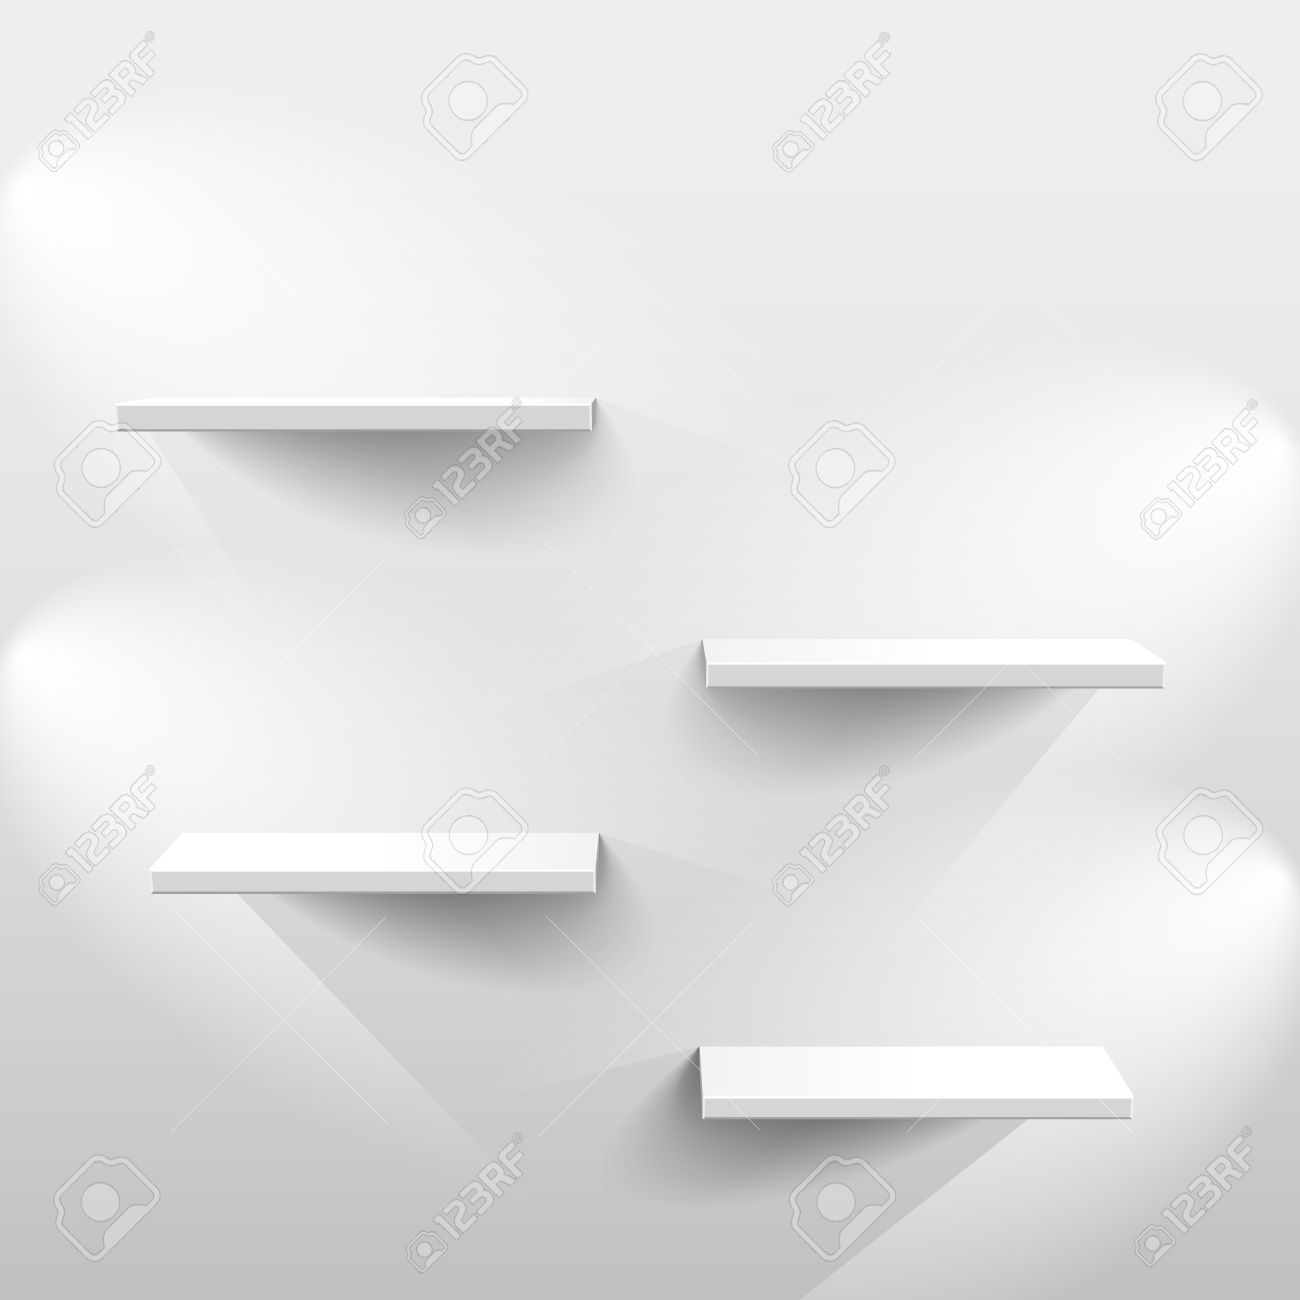 Shelves with light and shadow in empty white room - 41956971